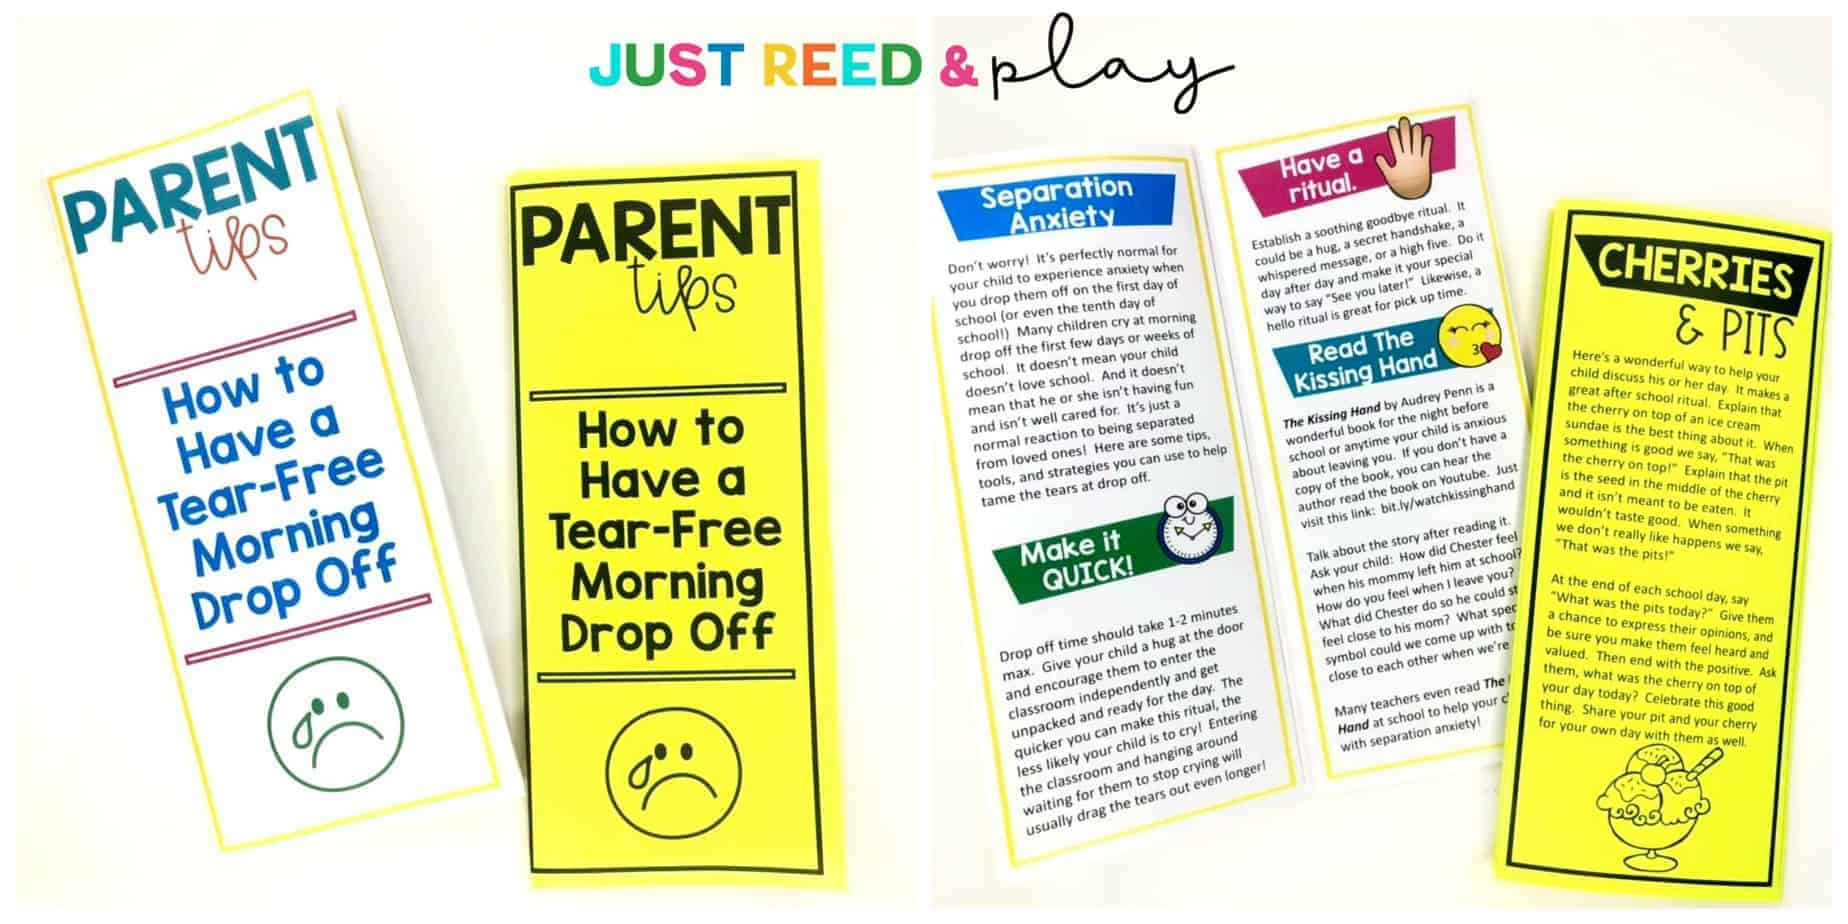 Print out this parent brochure with tips for a tear-free morning drop off at school or daycare.